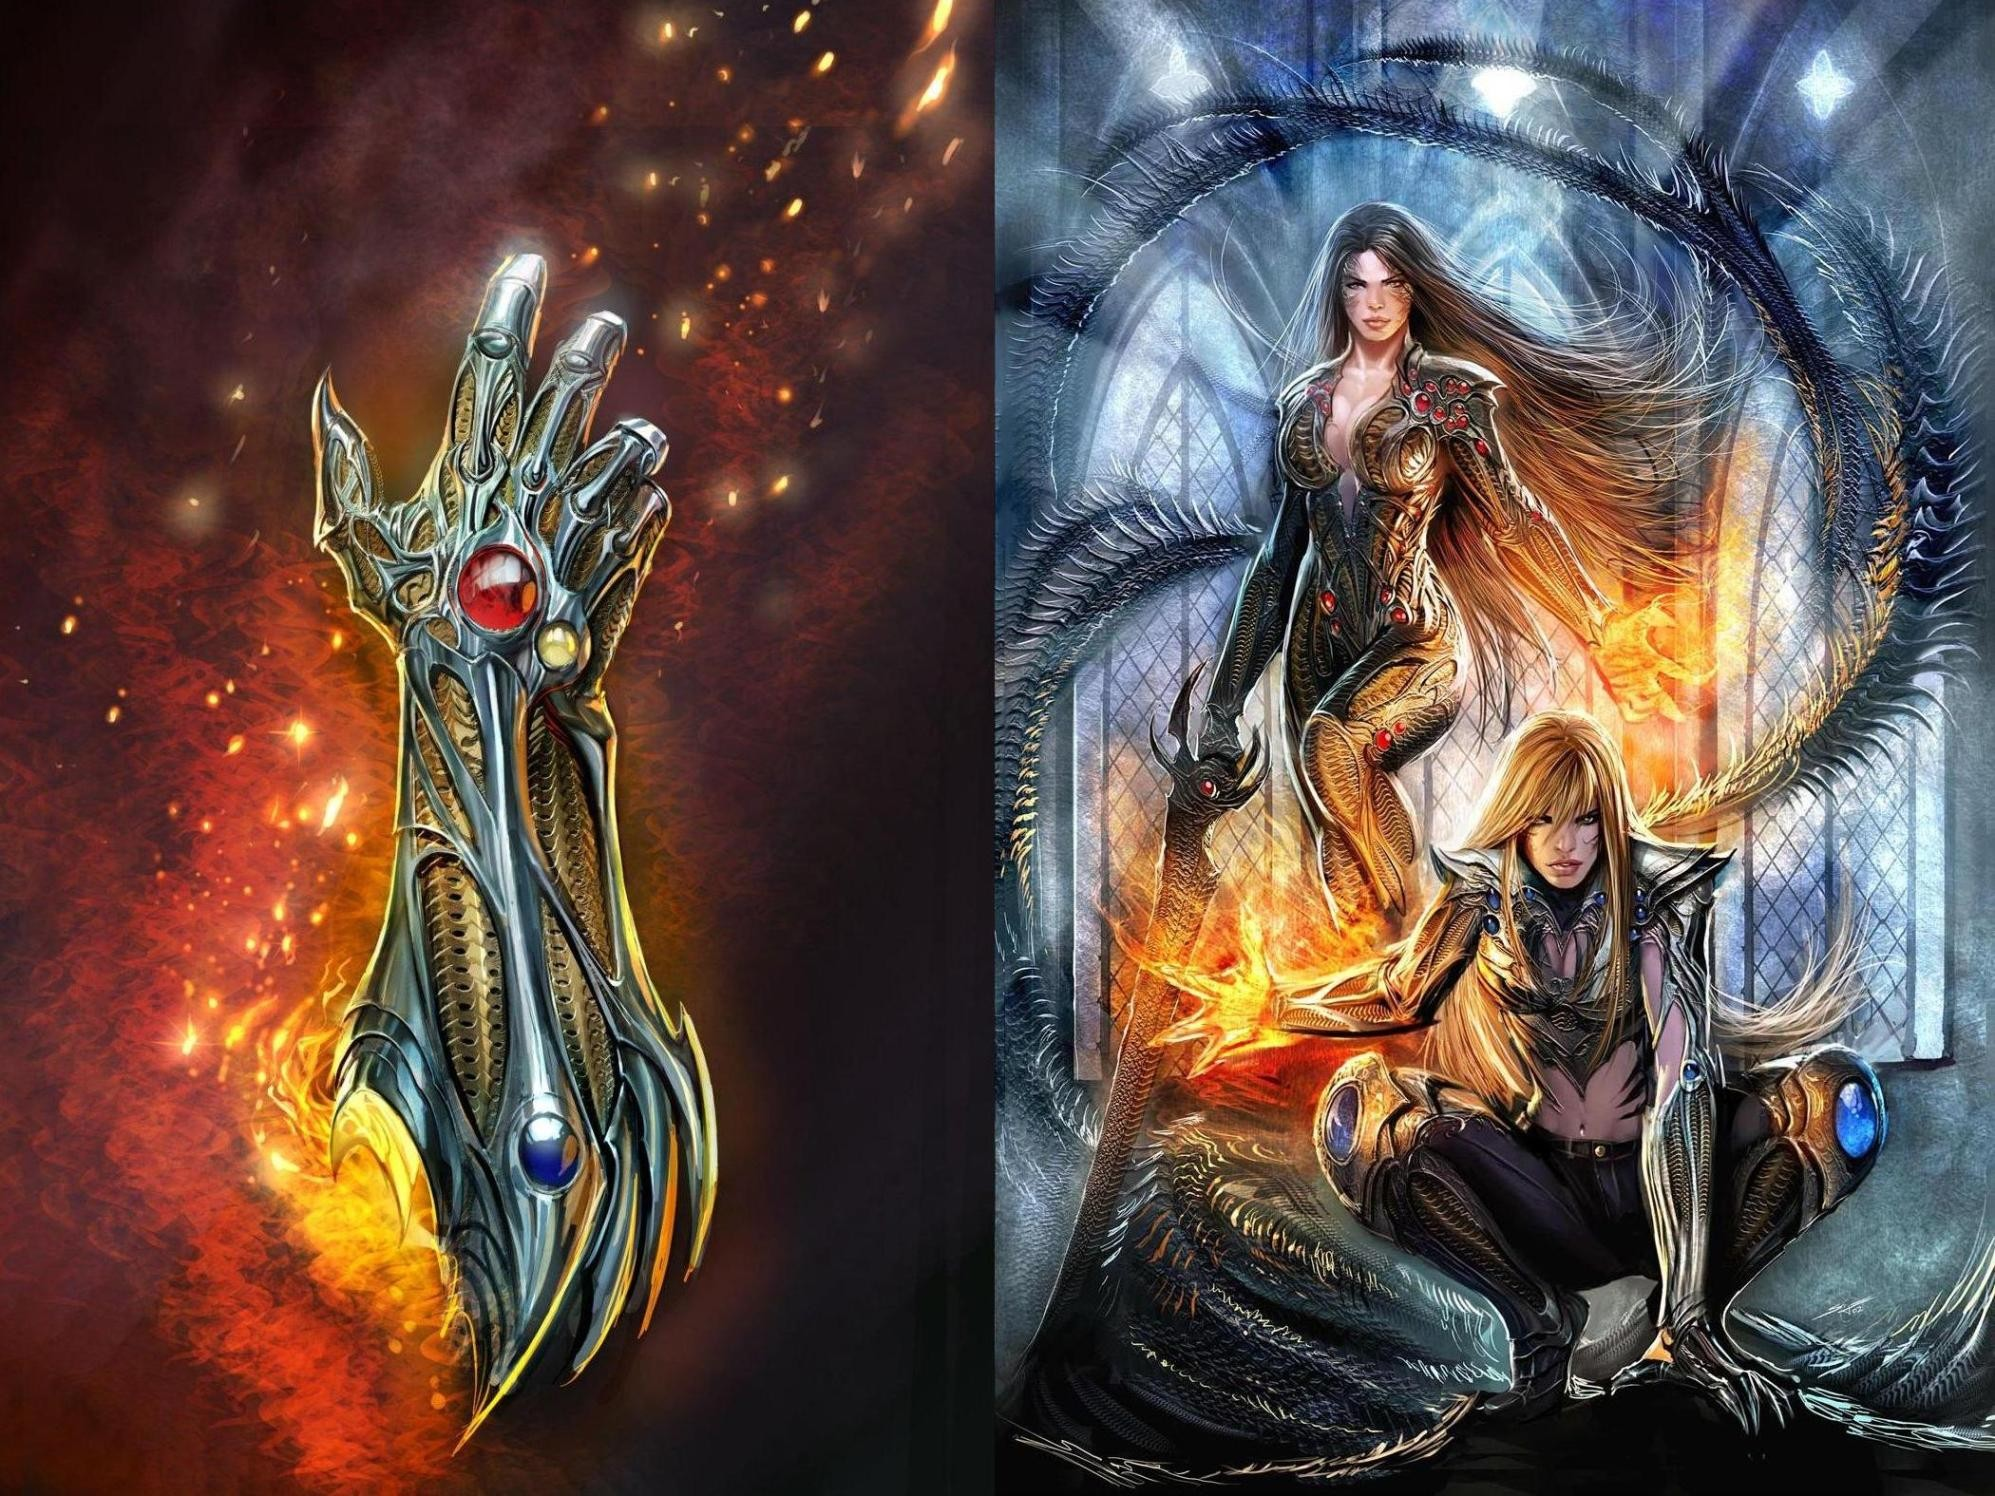 Fi, Magic,witchblade,hd Abstract Wallpapers, Mobile, - Magic Sci Fi Fantasy Art , HD Wallpaper & Backgrounds